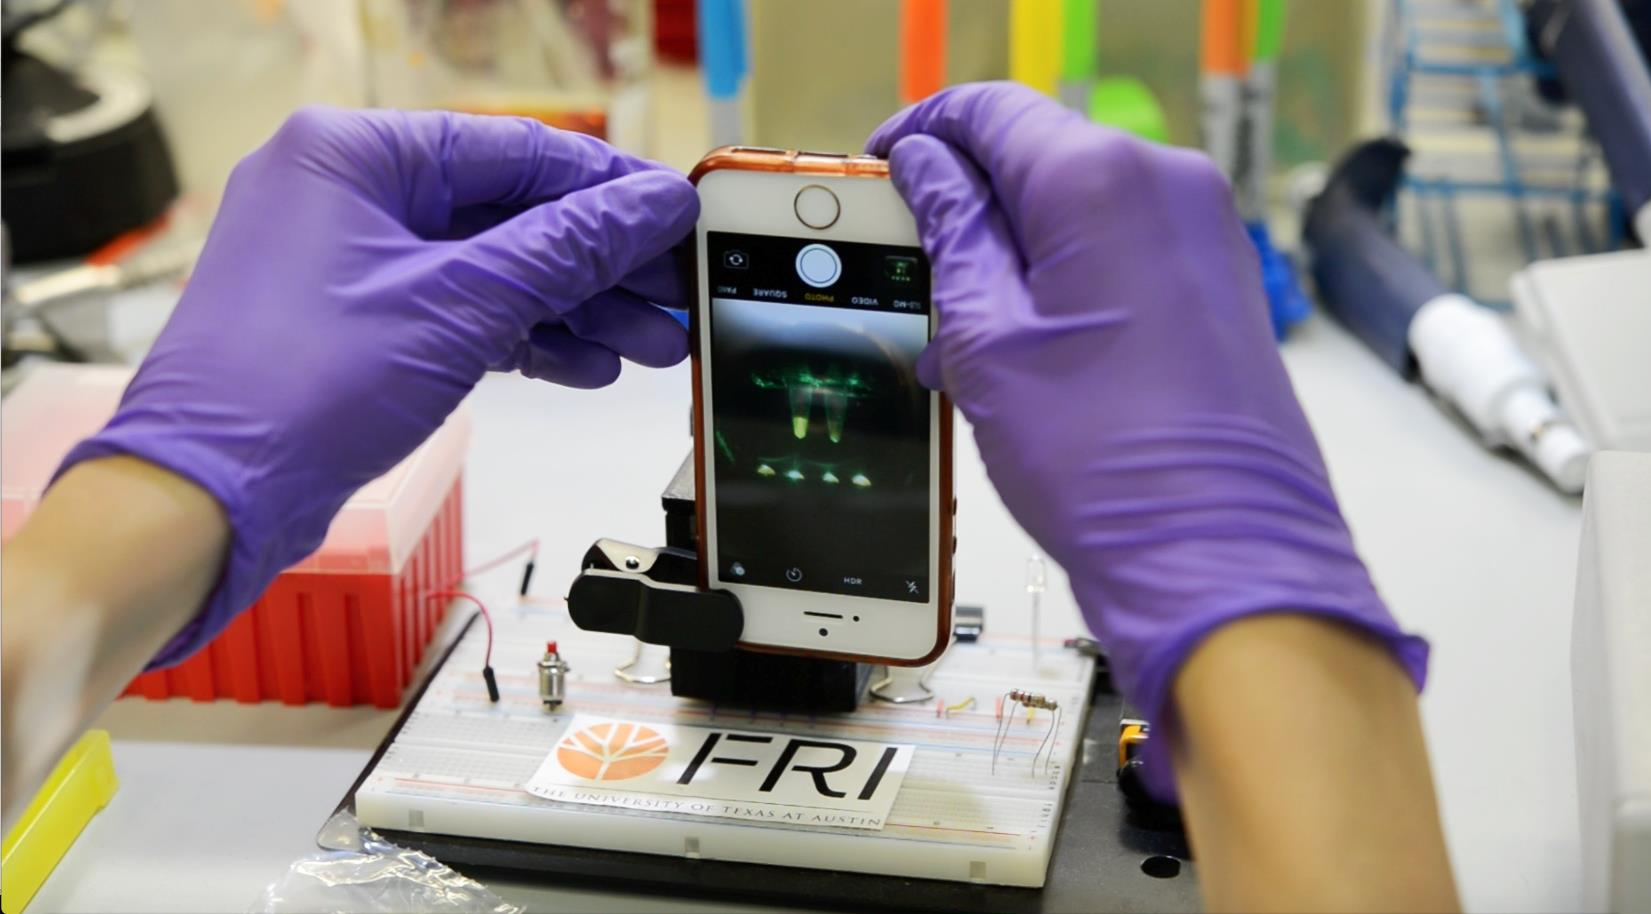 A user can easily record the results of a search for genes unique to Ae. aegypti and Wolbachia using a smartphone camera.